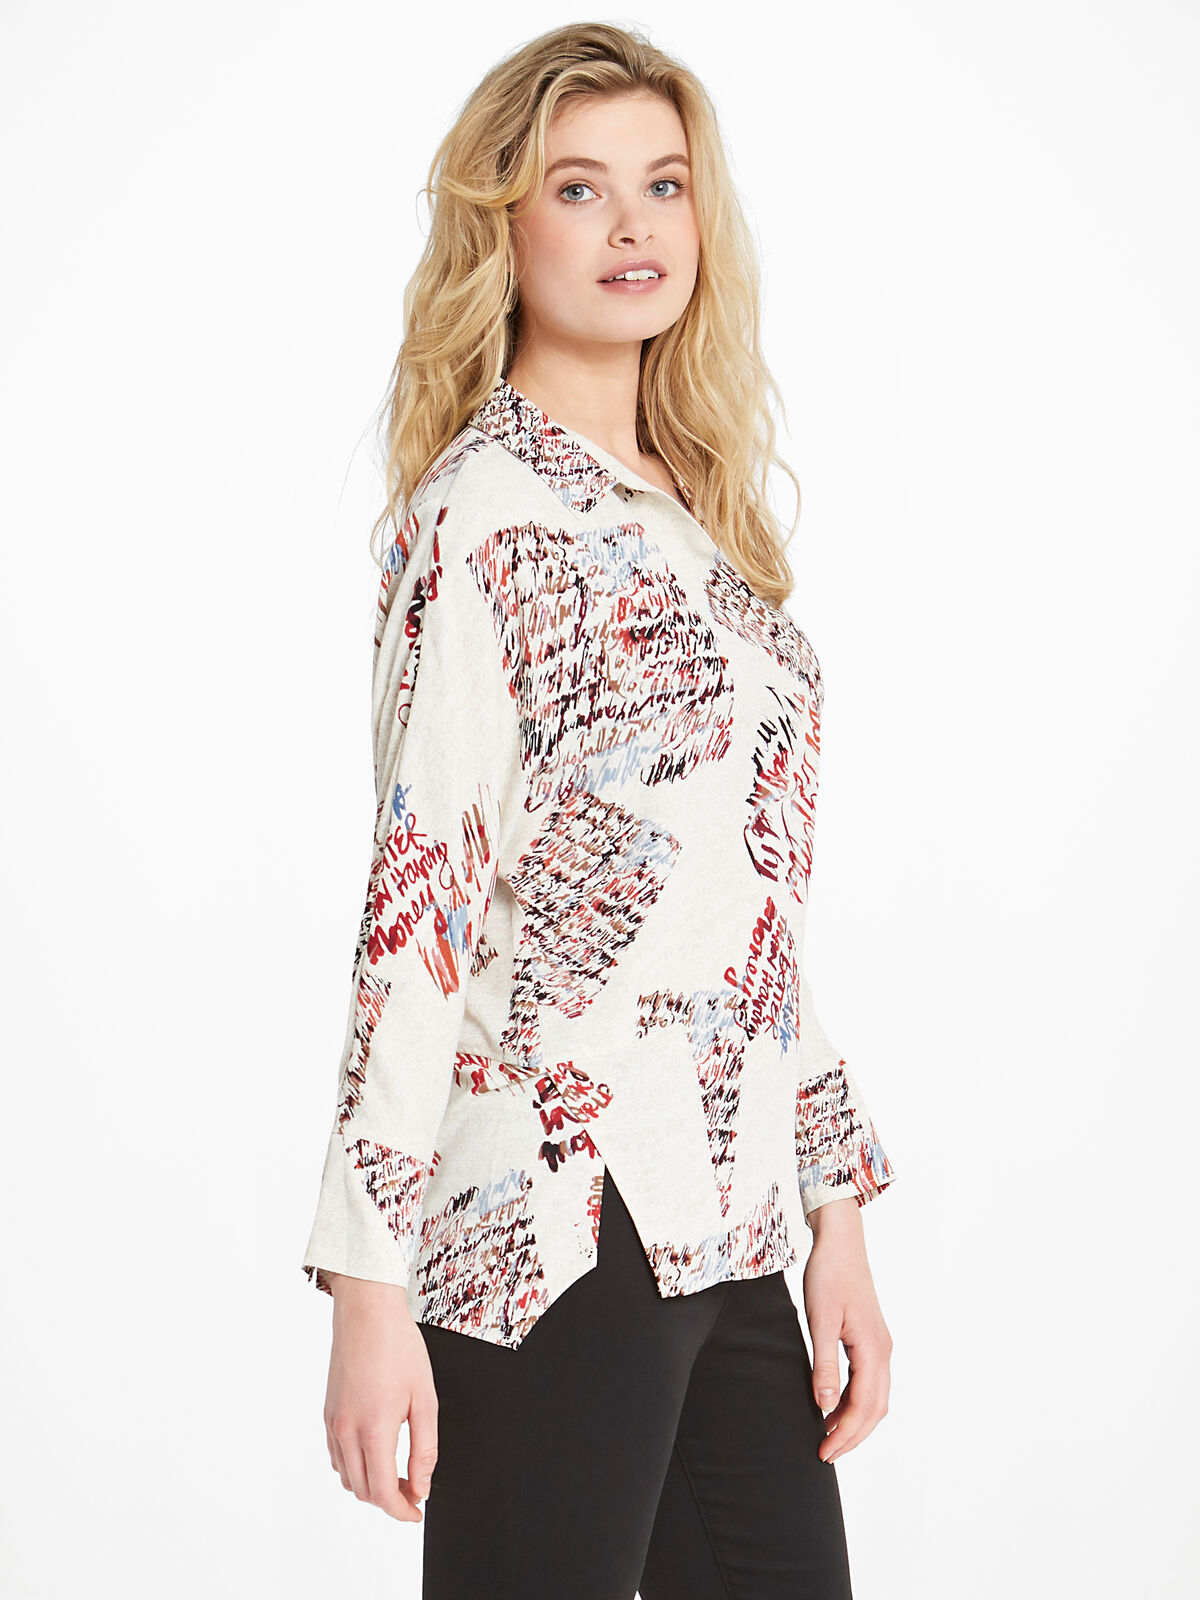 Scattered Letters Blouse